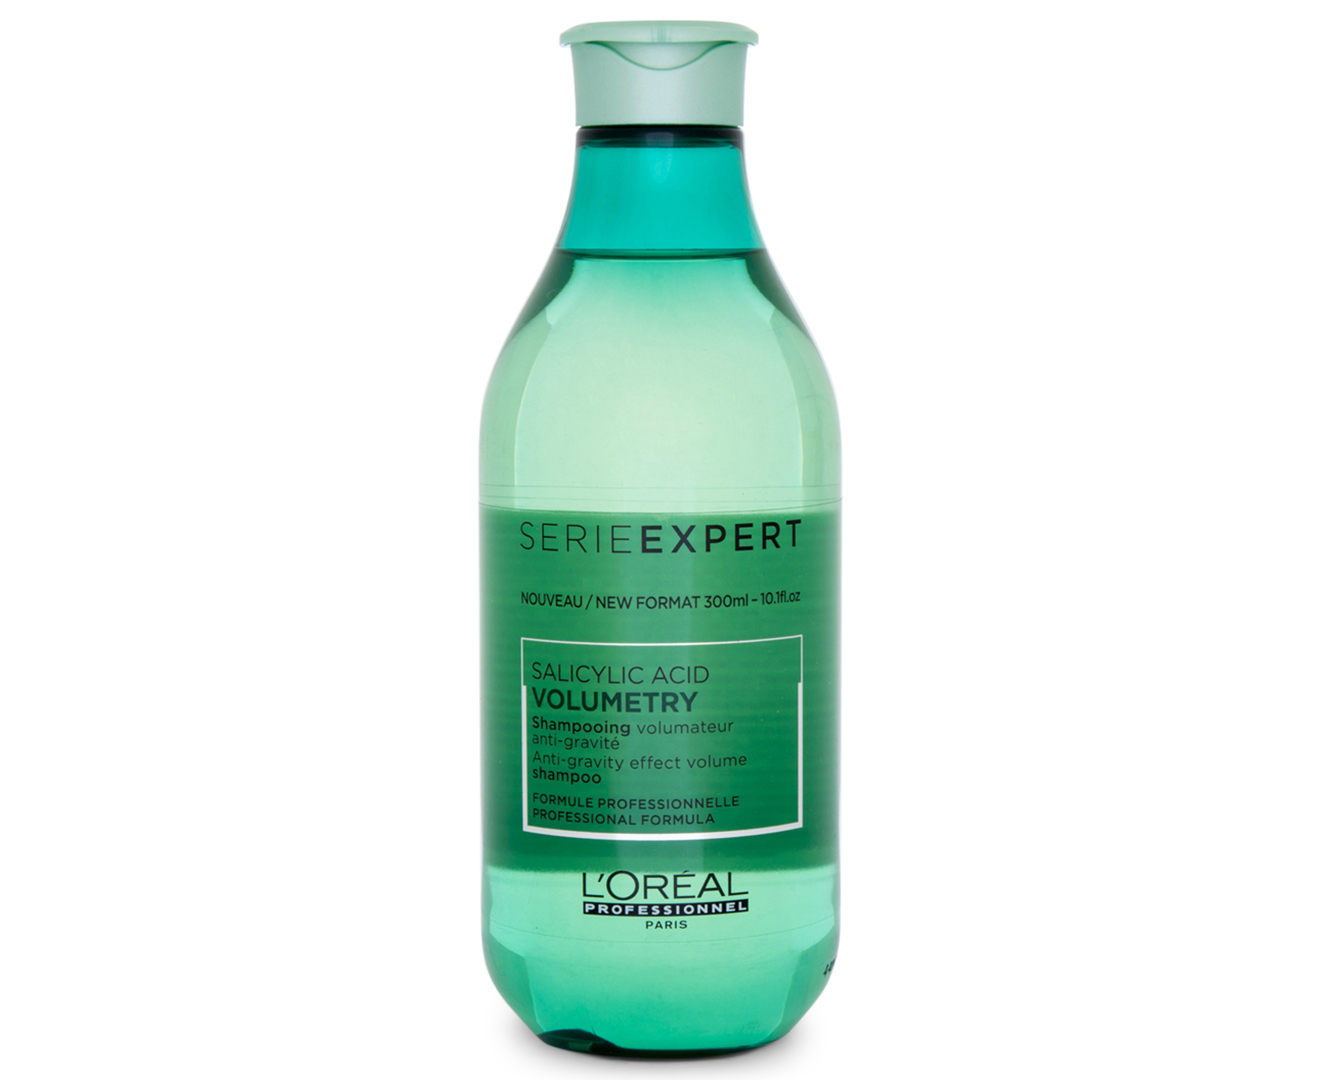 L'Oréal Serie Expert Volumetry Shampoo 300mL